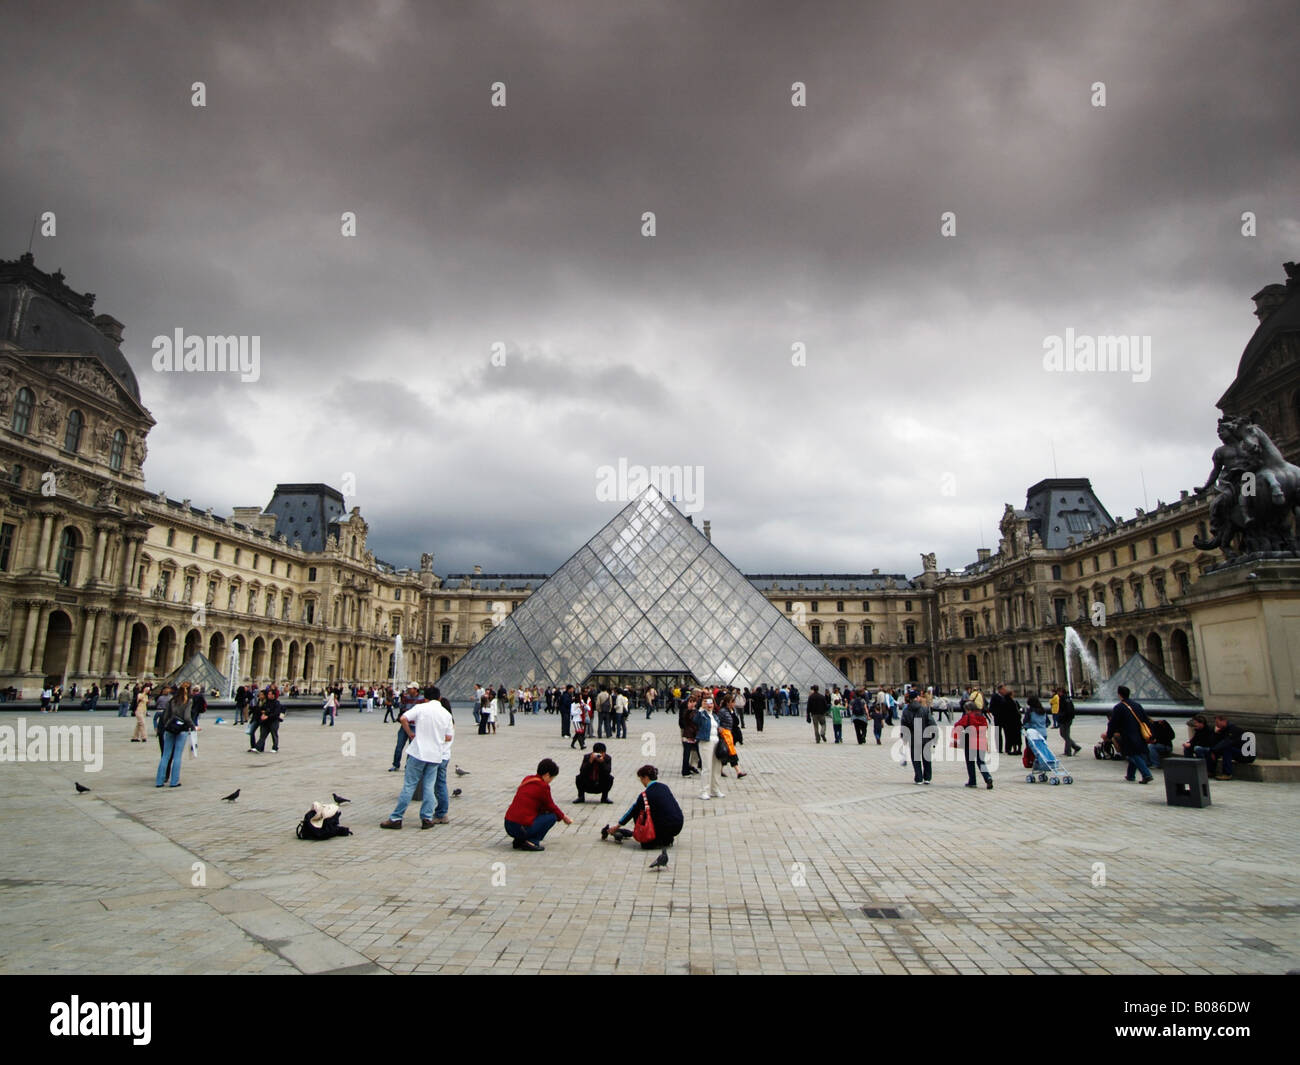 Louvre courtyard with many people tourists and the pyramid by I M Pei Paris France - Stock Image